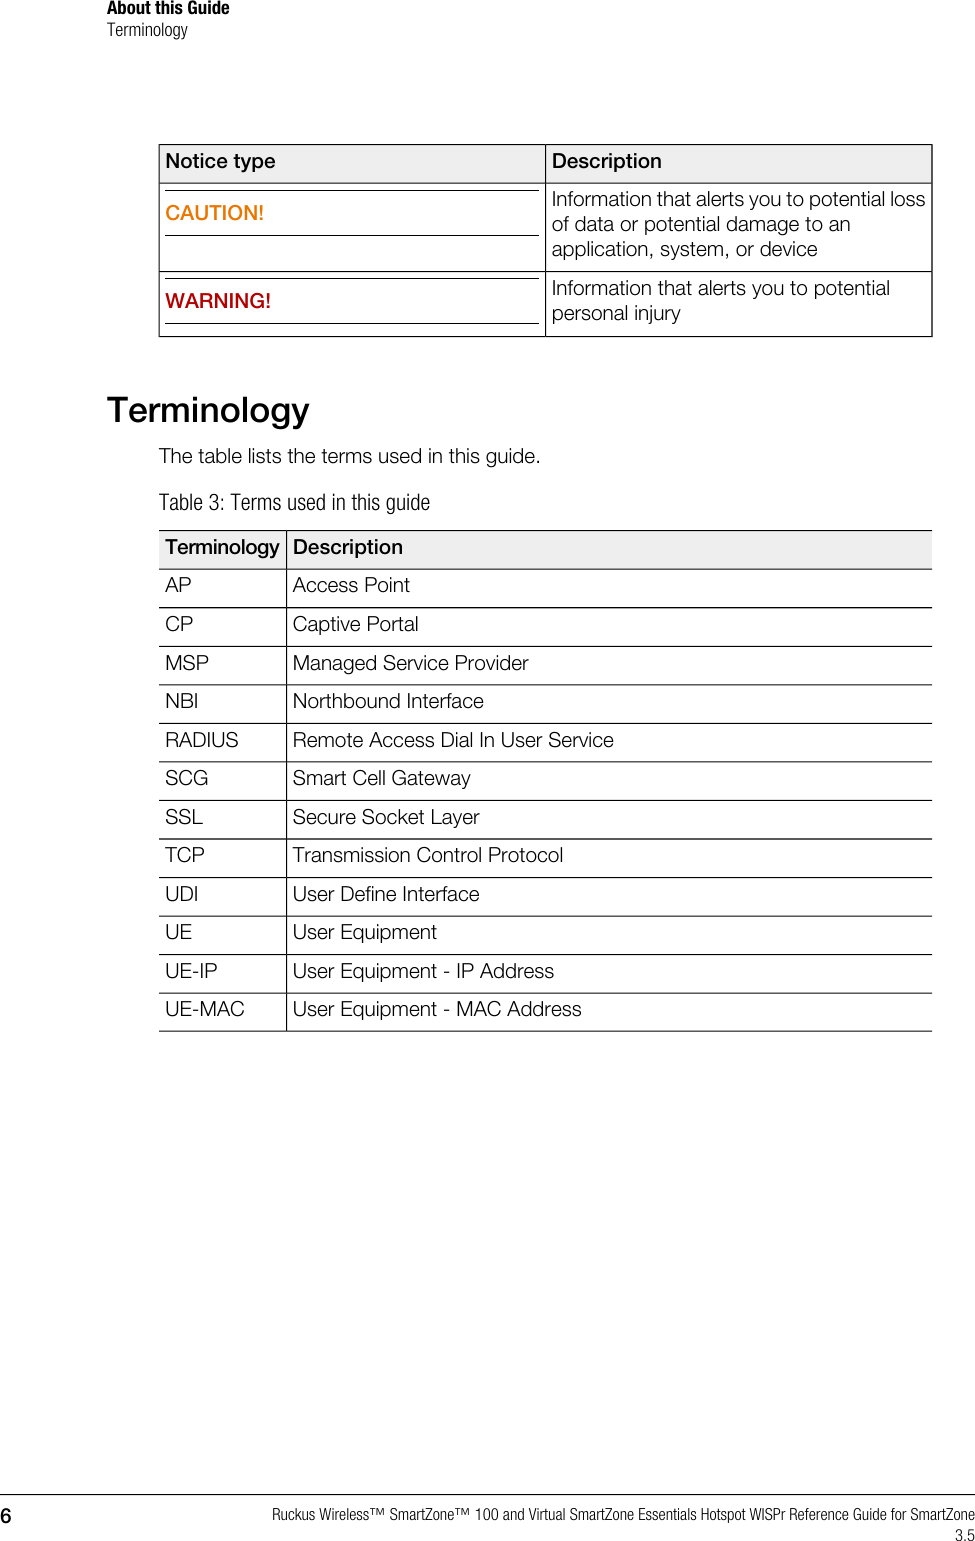 Ruckus SZ™ 100 And VSZ E™ Hotspot WISPr Reference Guide For